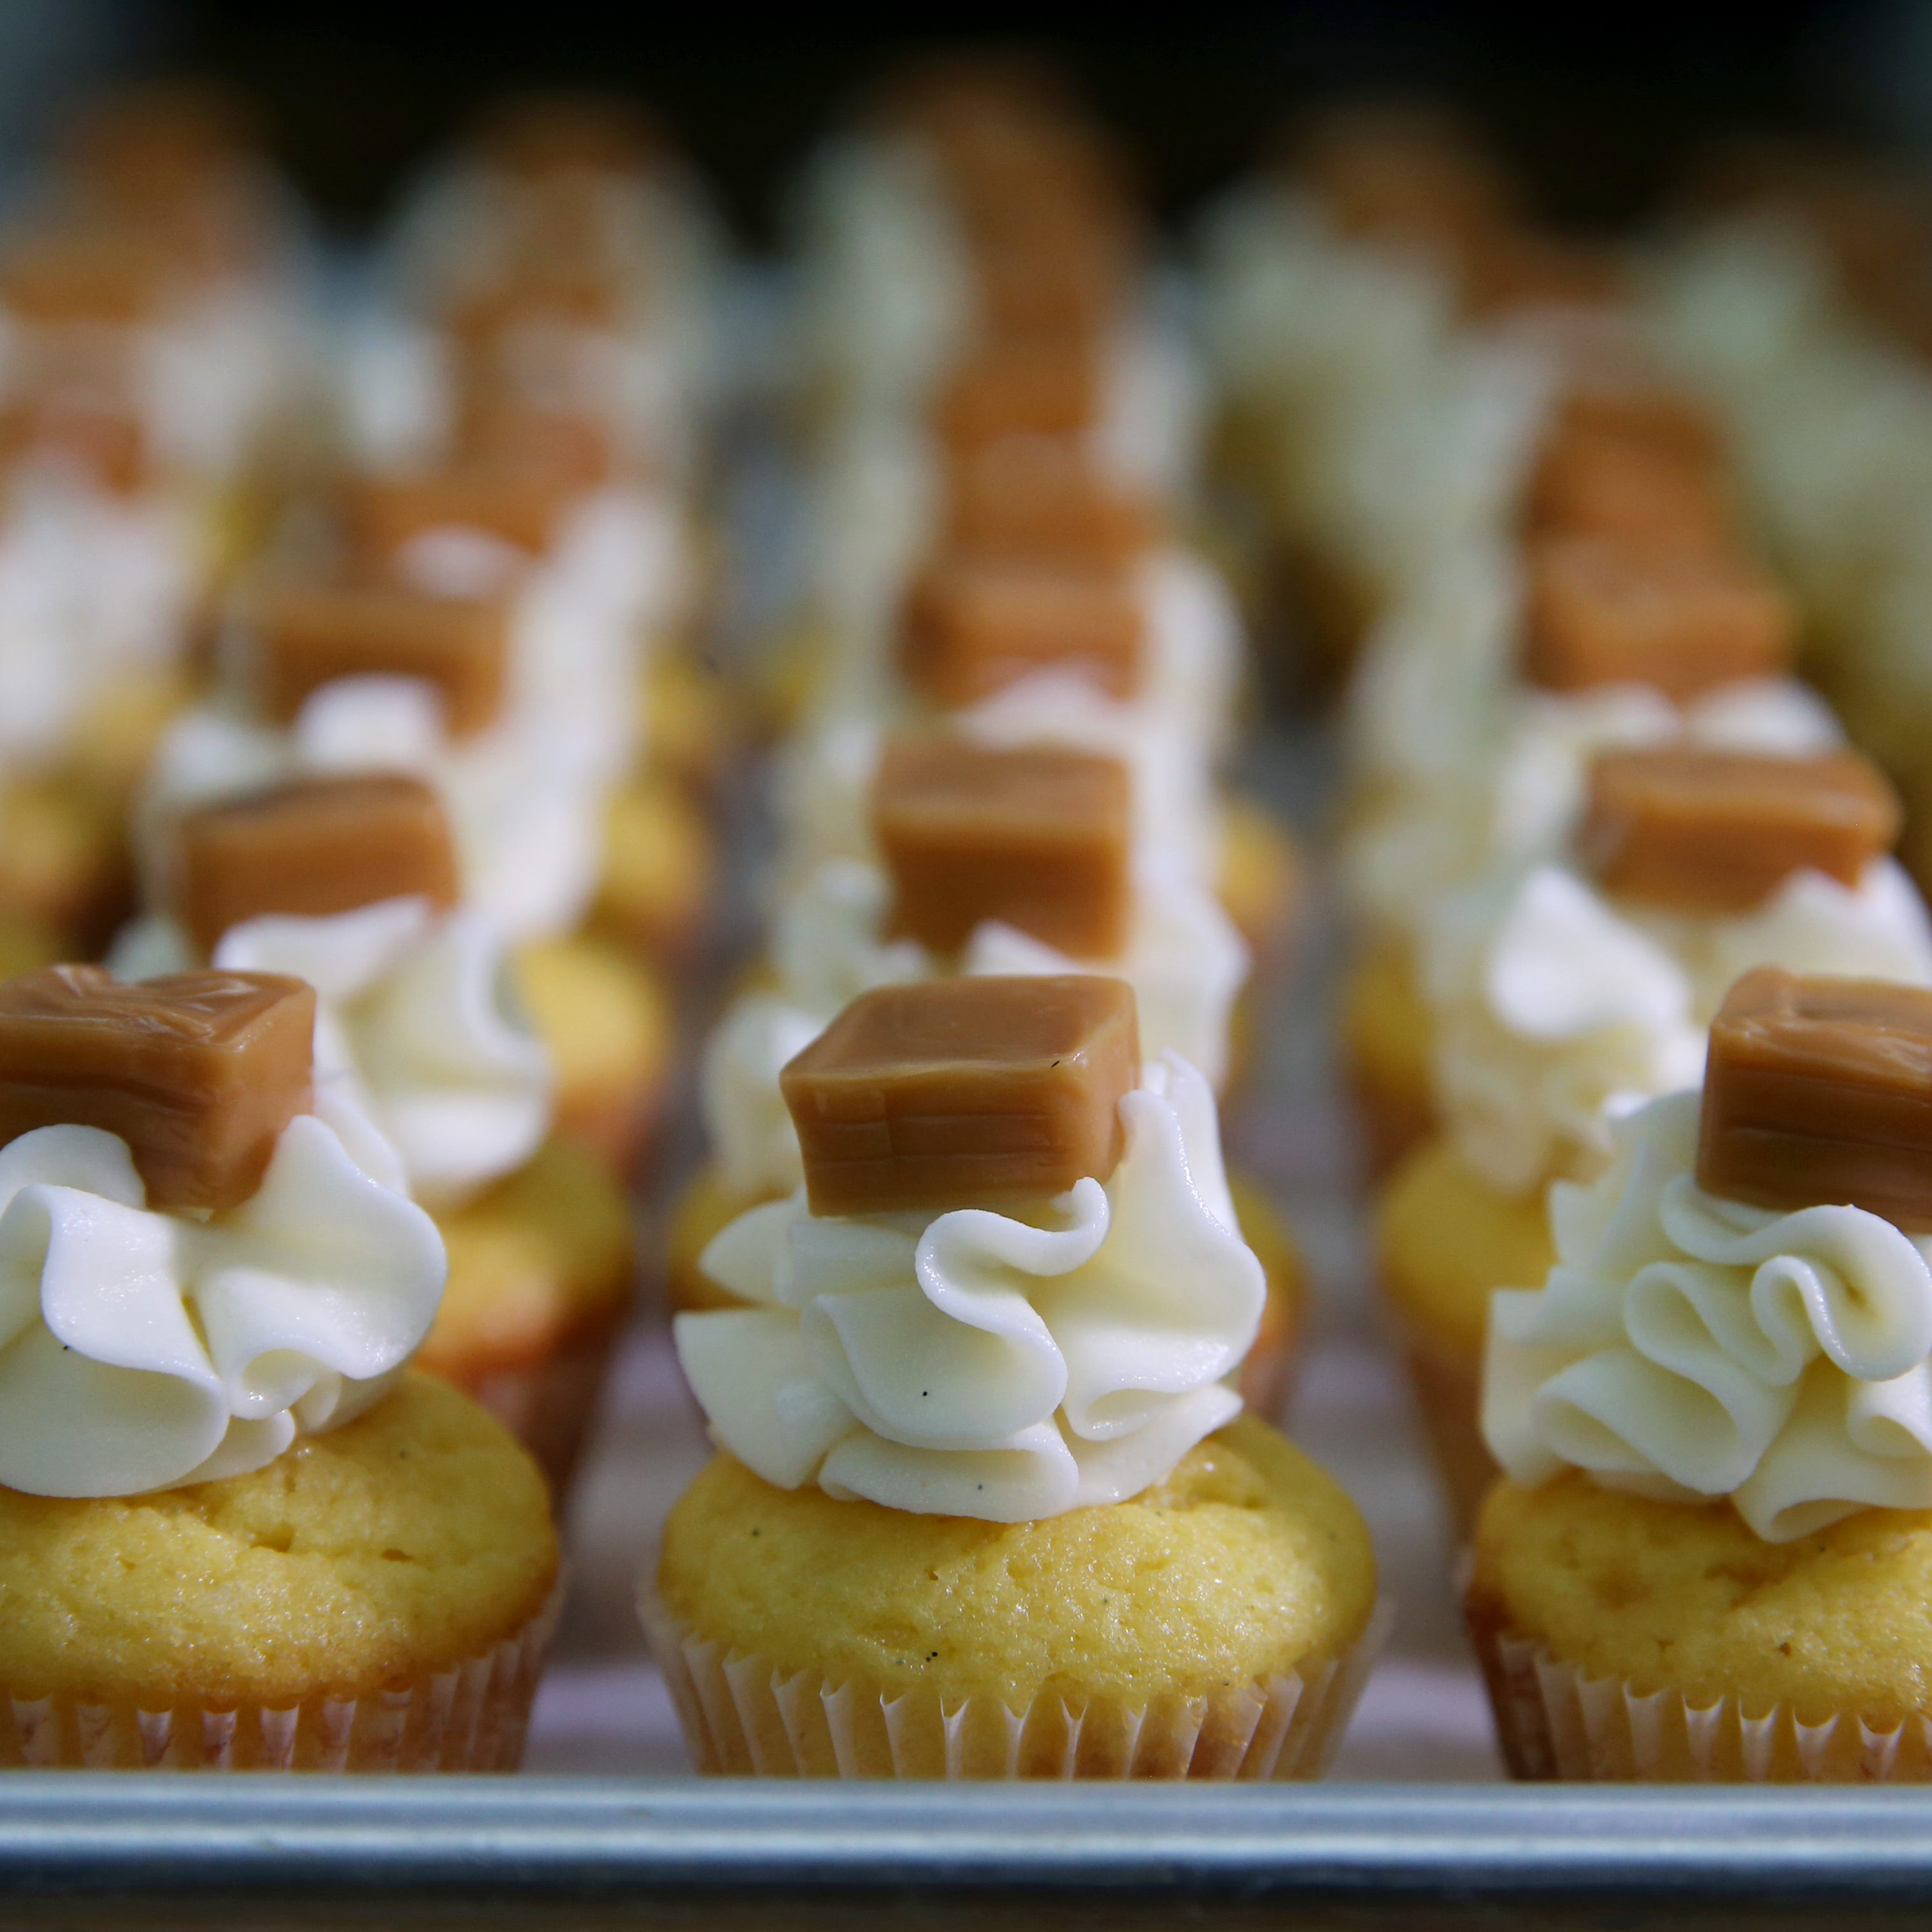 Who says cupcakes are out? New cupcakery opens Wednesday